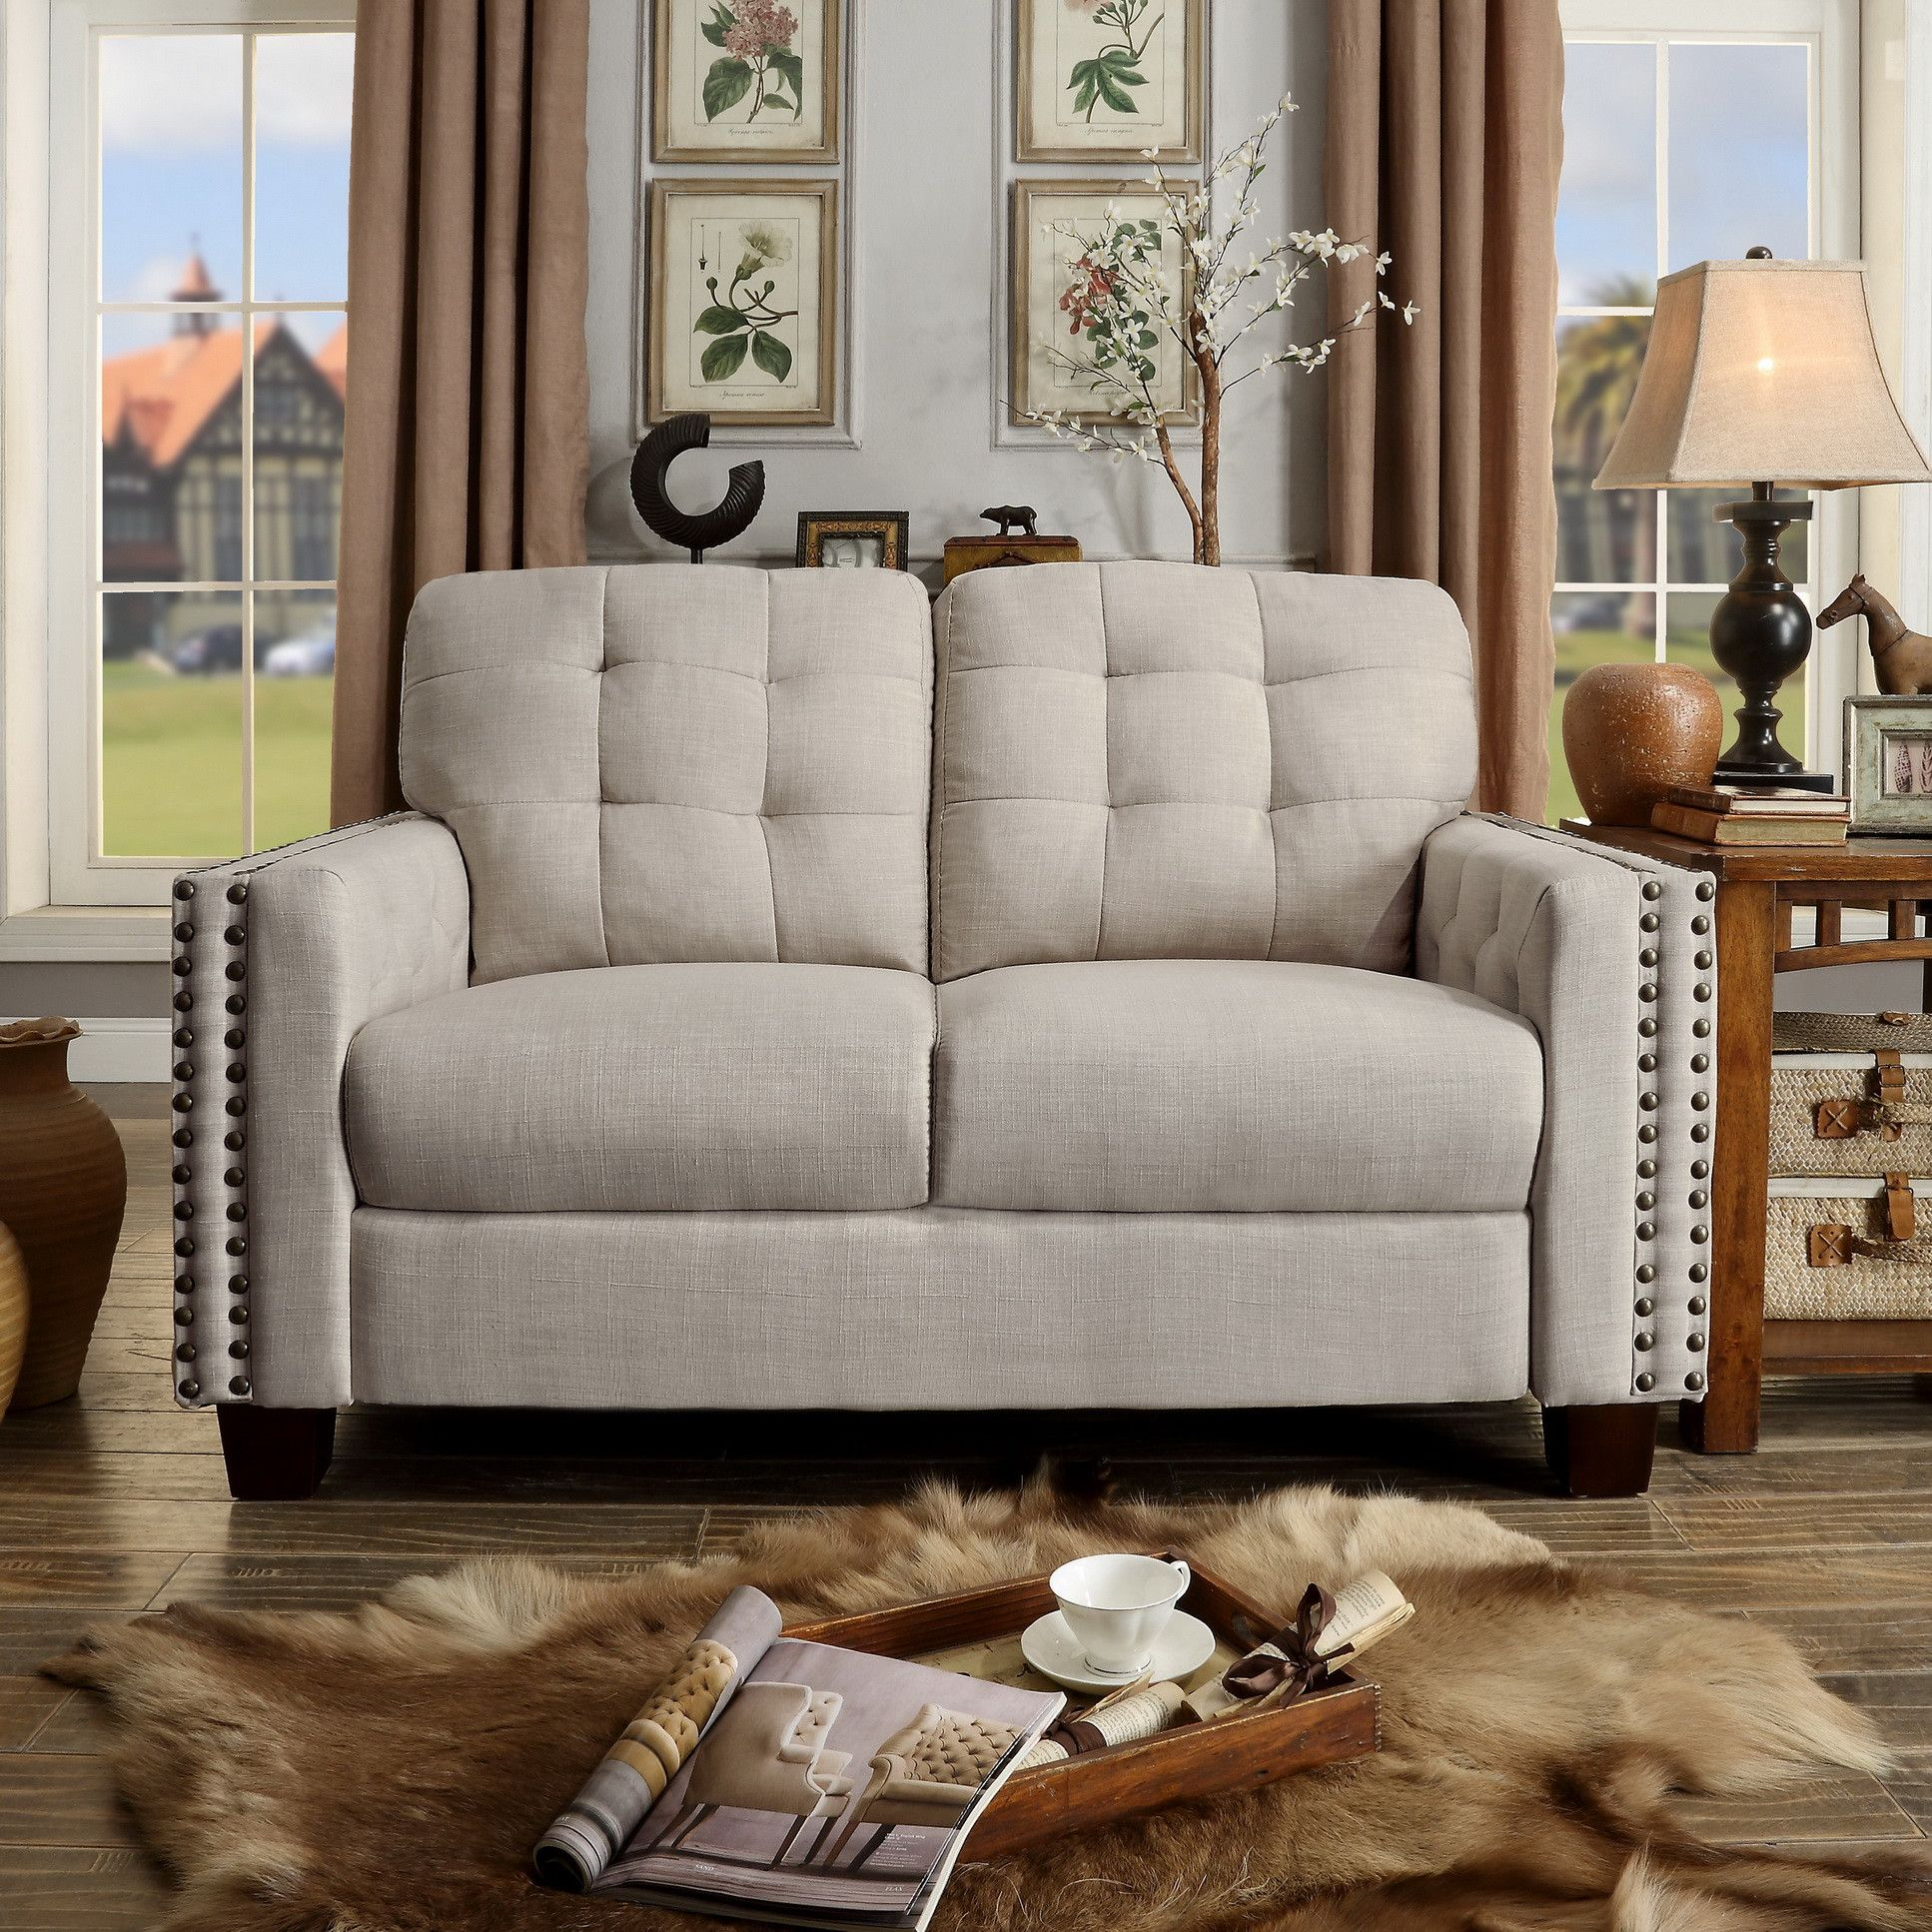 Customer Image Zoomed   Furniture, Love seat, Tufted loveseat